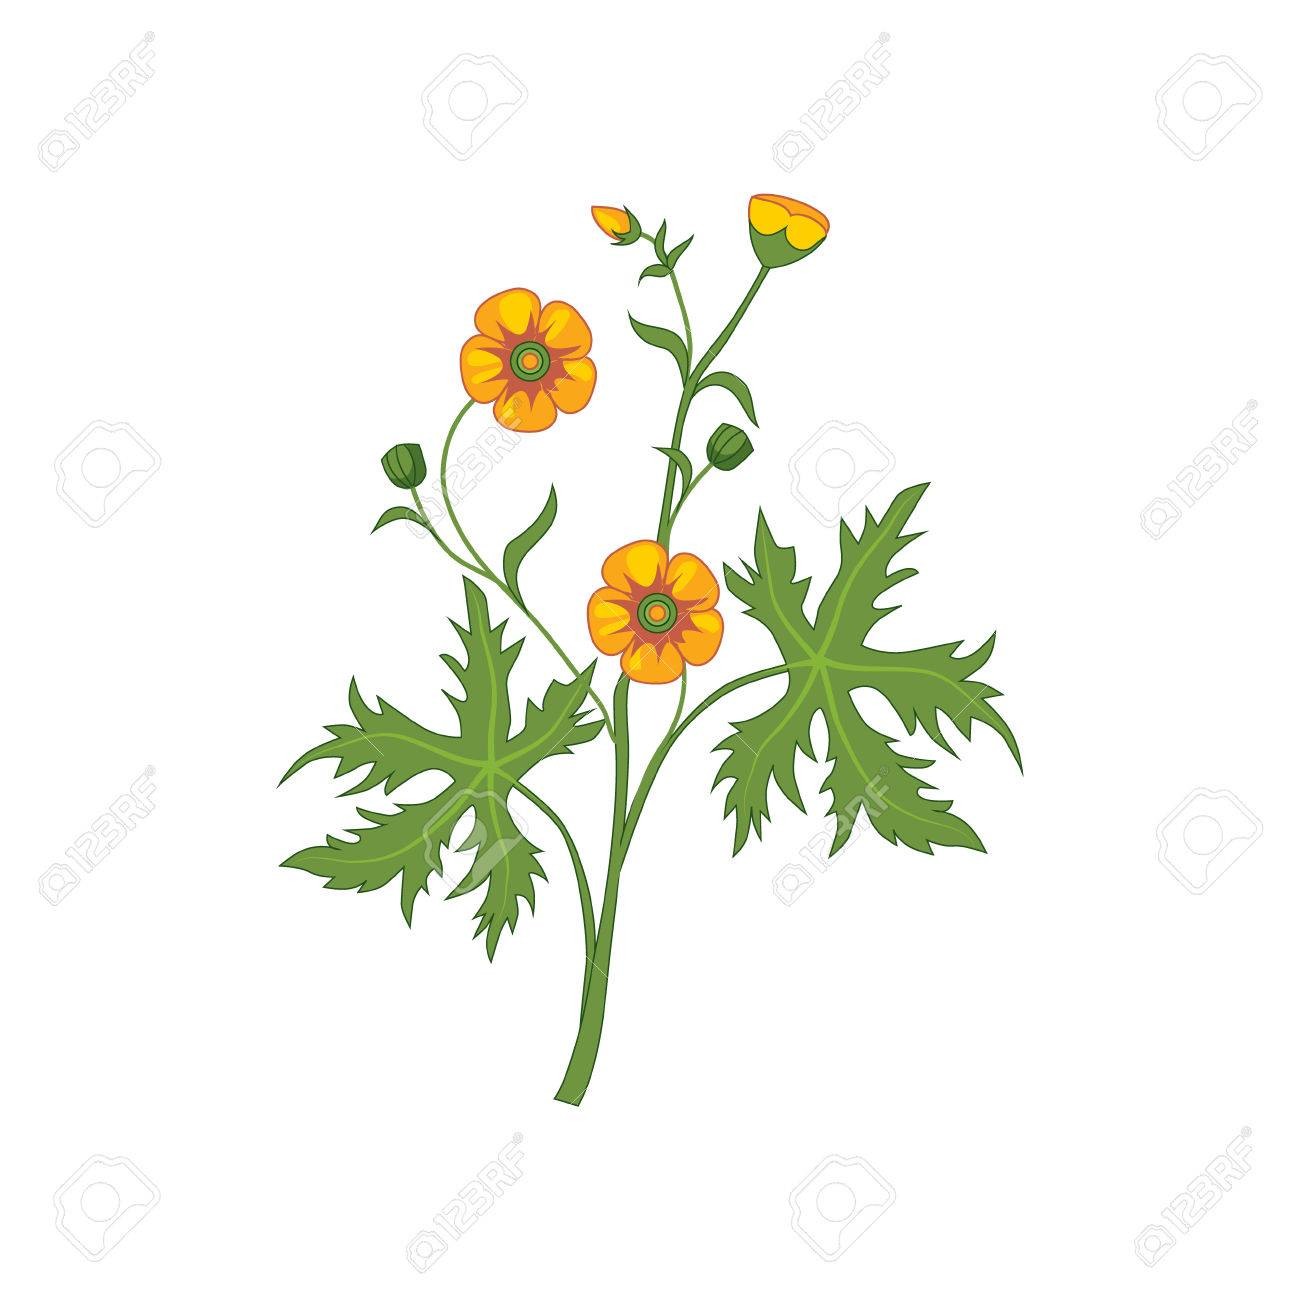 1300x1300 Buttercup Wild Flower Hand Drawn Detailed Illustration. Plant